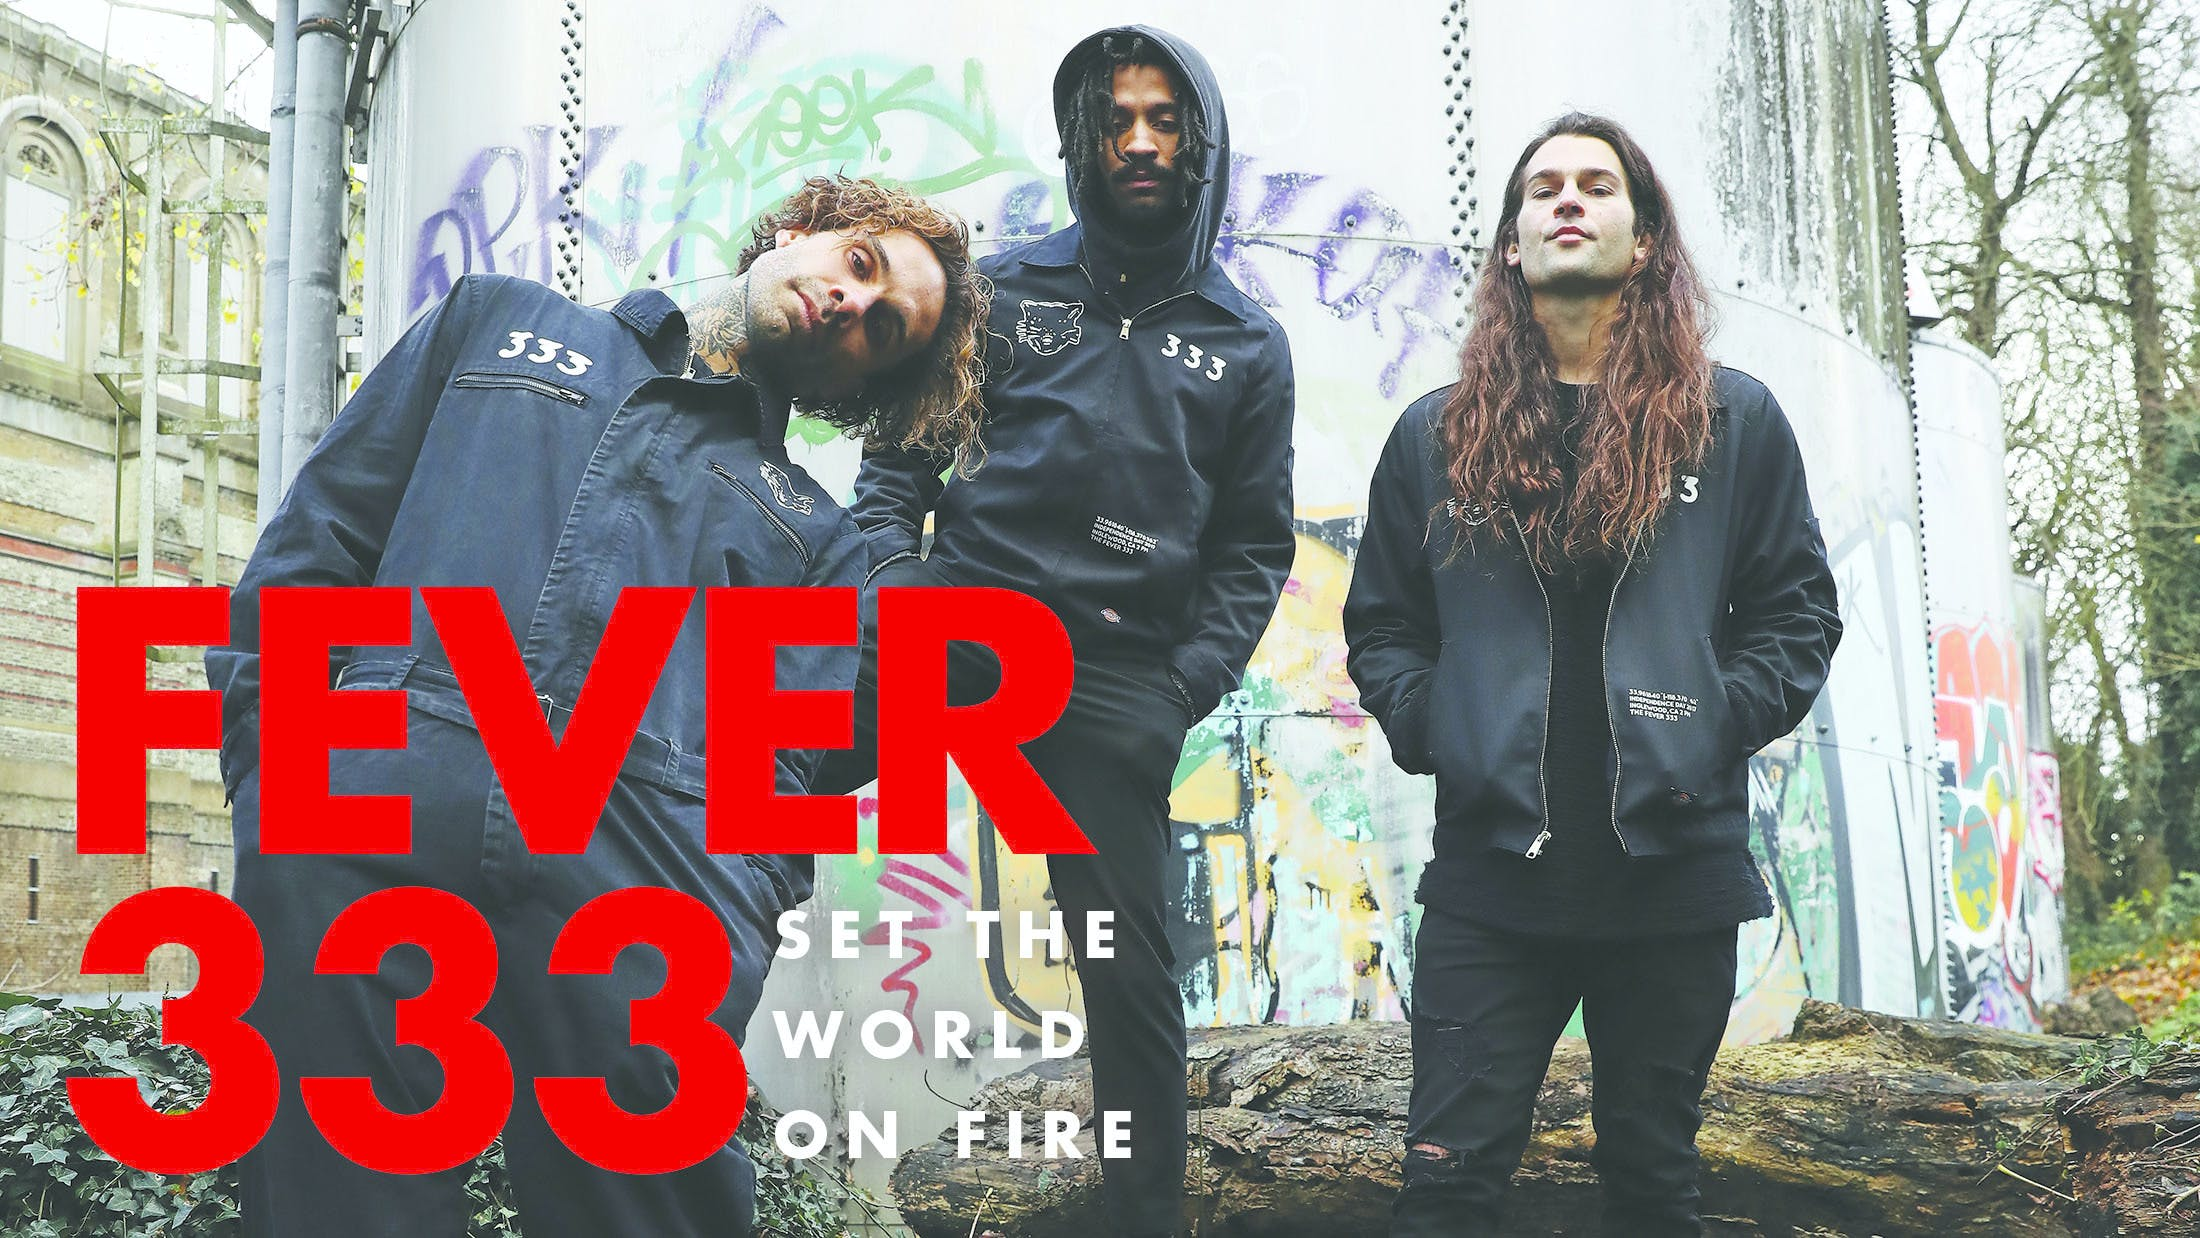 K!1756 – FEVER 333 Set The World On Fire